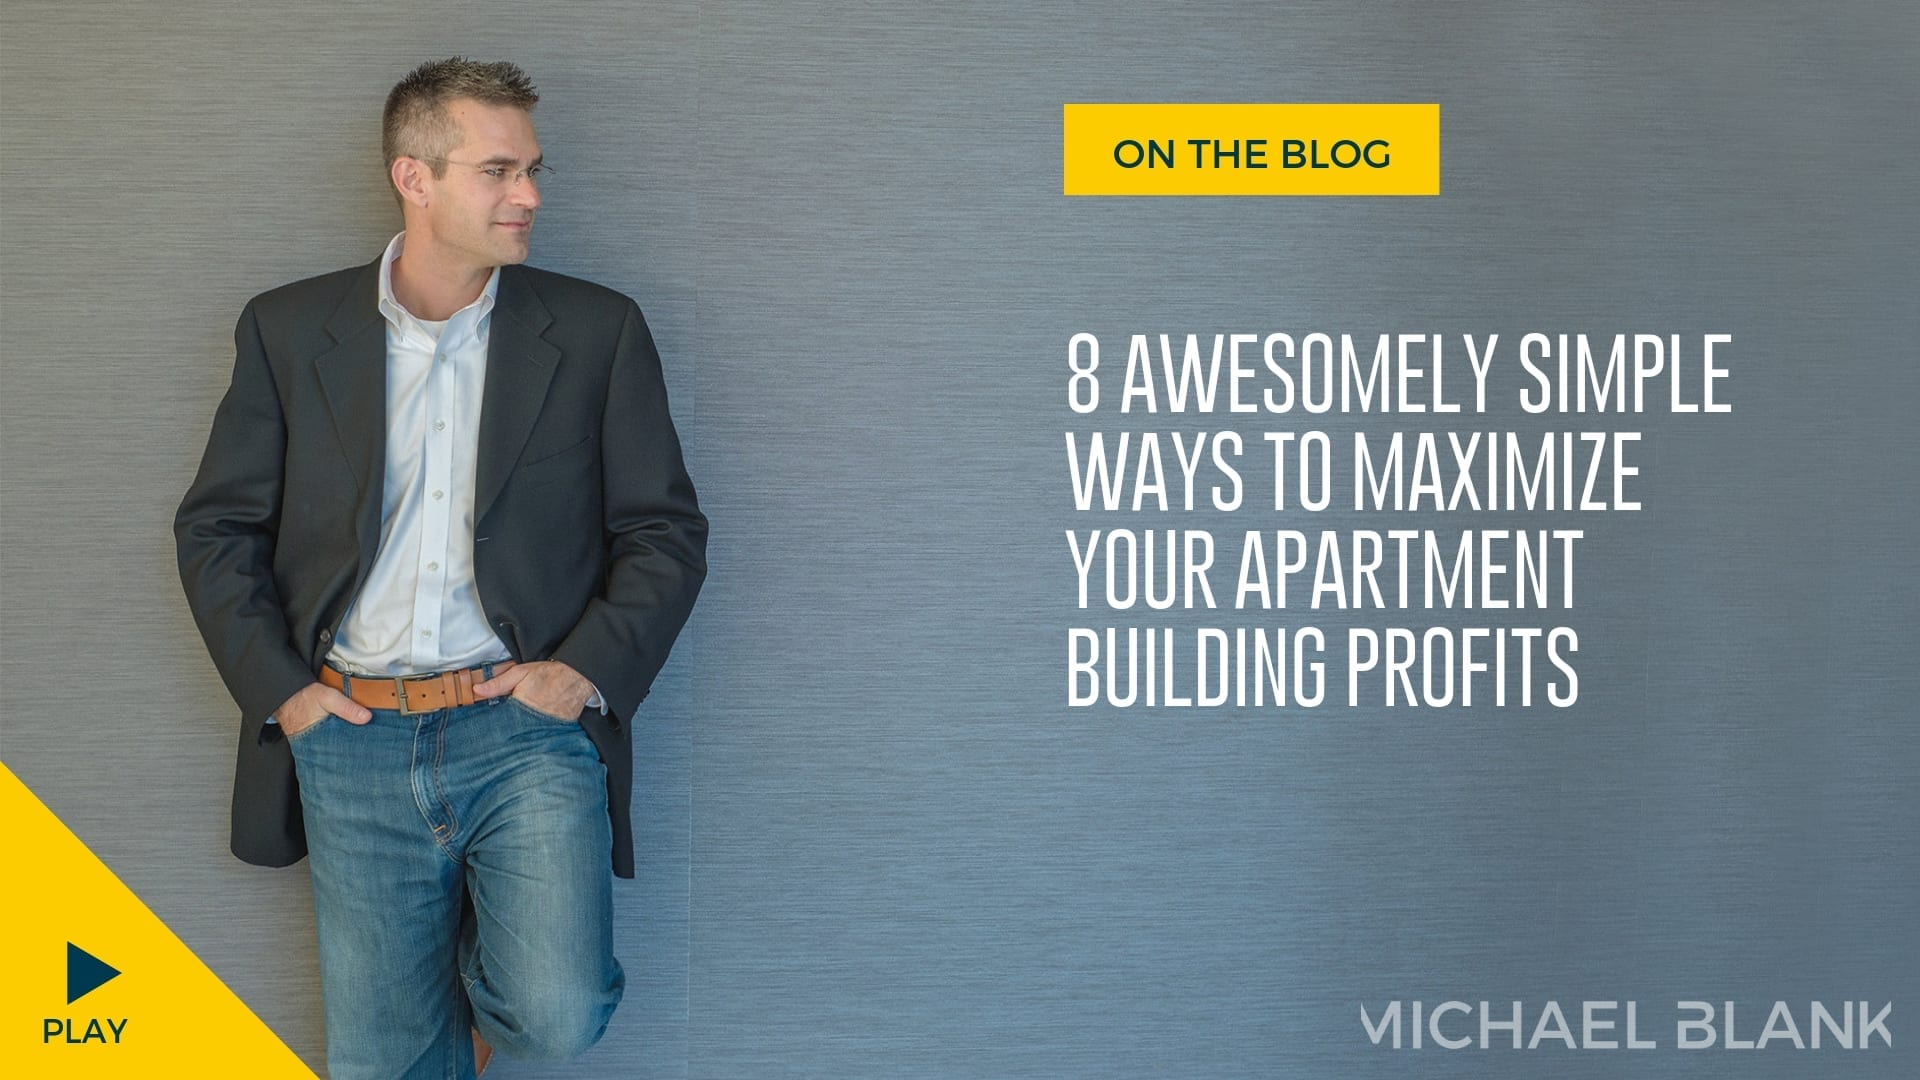 8 Awesomely Simple Ways to Maximize Your Apartment Building Profits